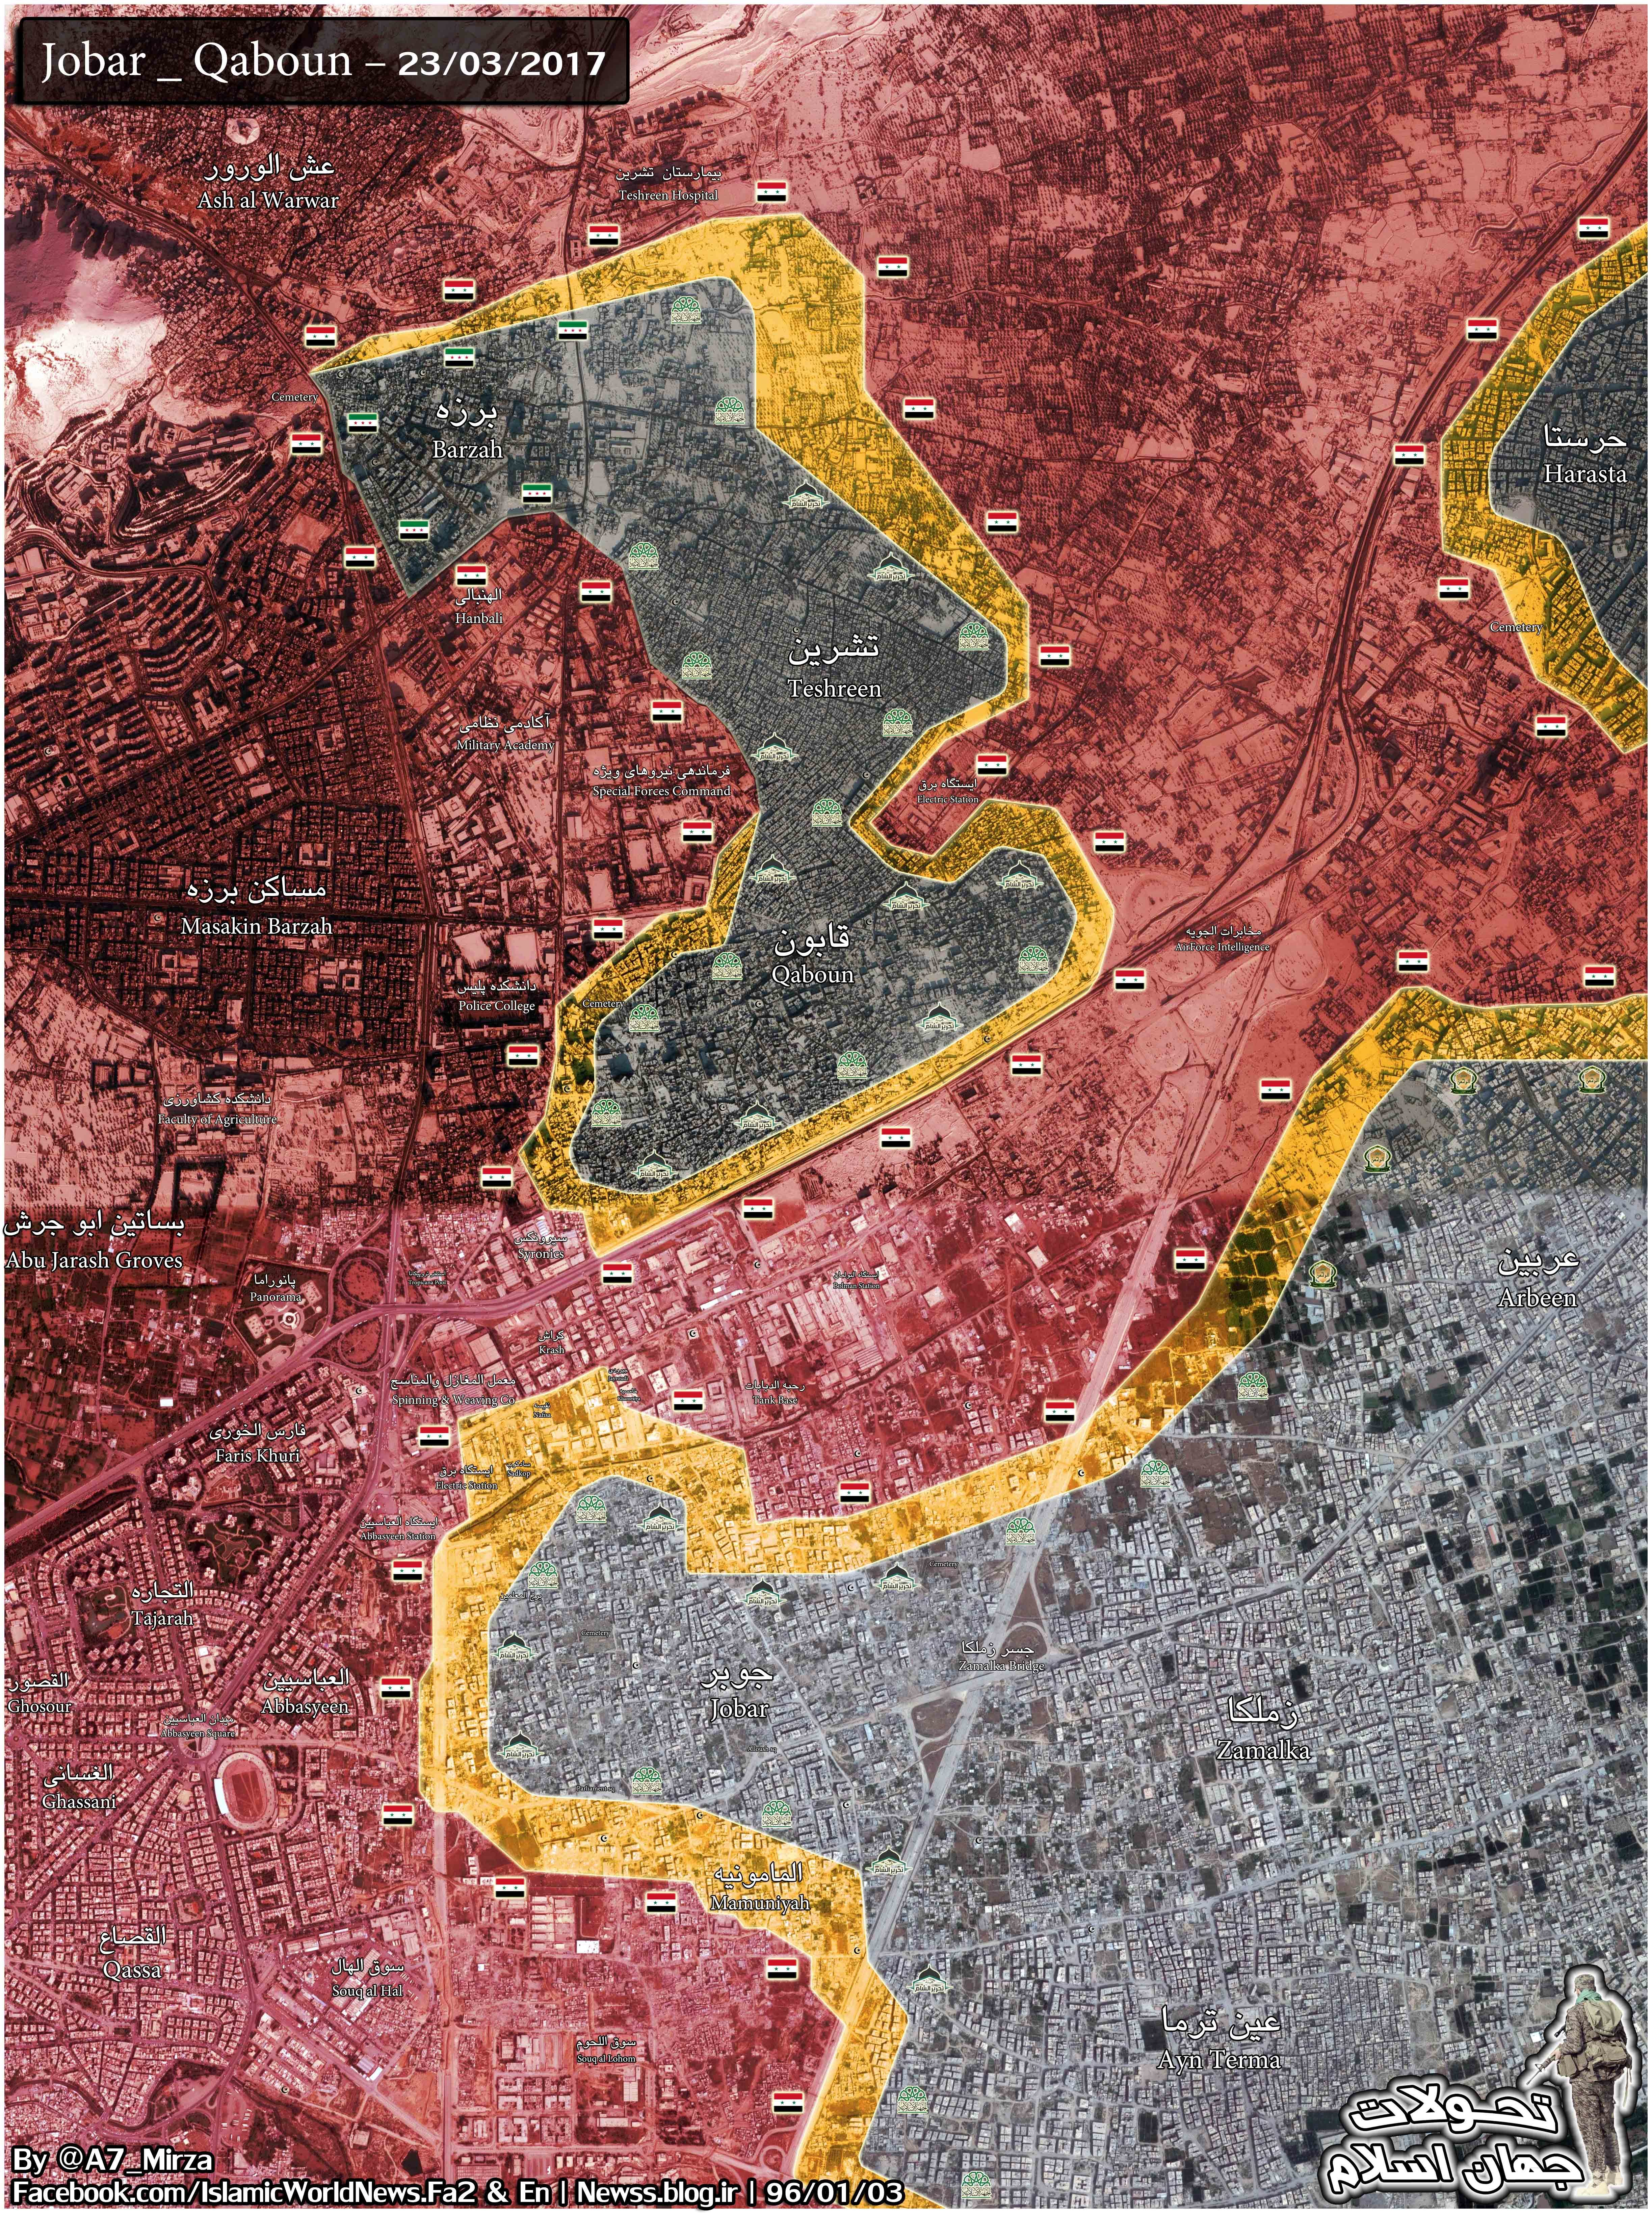 Intense Clashes Ongoing Near Textile Factory In Qabun Industrial Area In Eastern Damascus